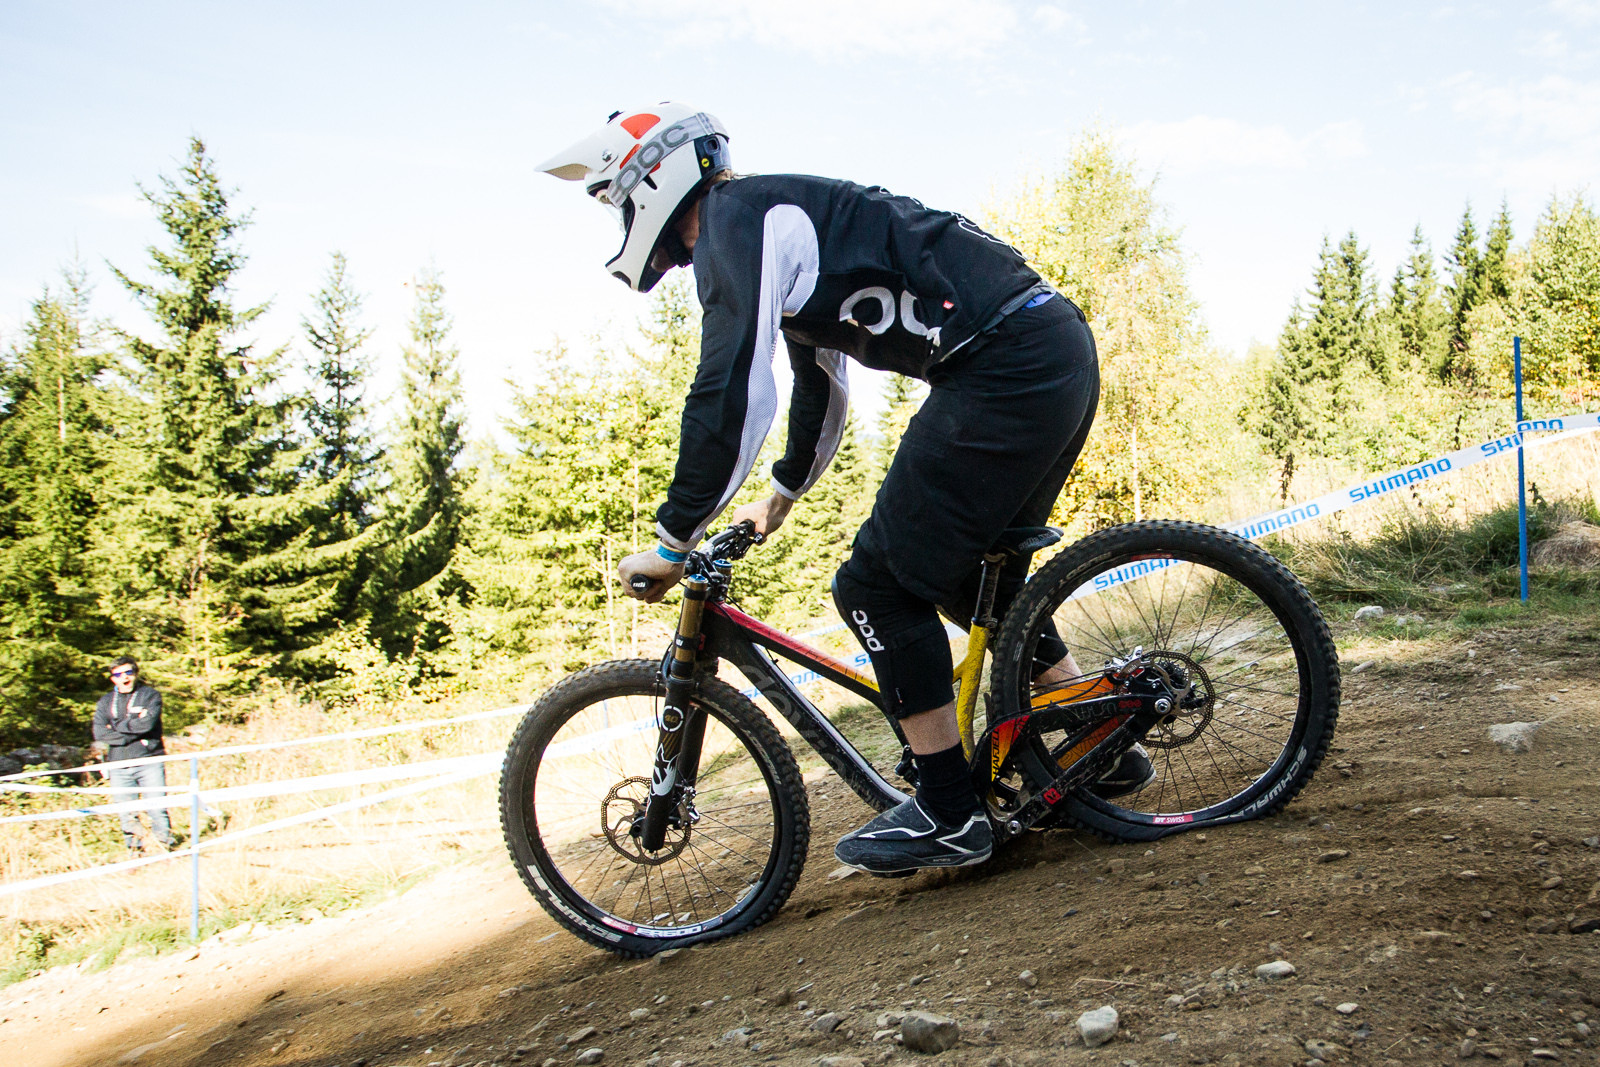 G-Out Project, Hafjell World Cup - Devinci Wilson Carbon Squished to the Max! - G-OUT PROJECT: Hafjell World Cup - Mountain Biking Pictures - Vital MTB